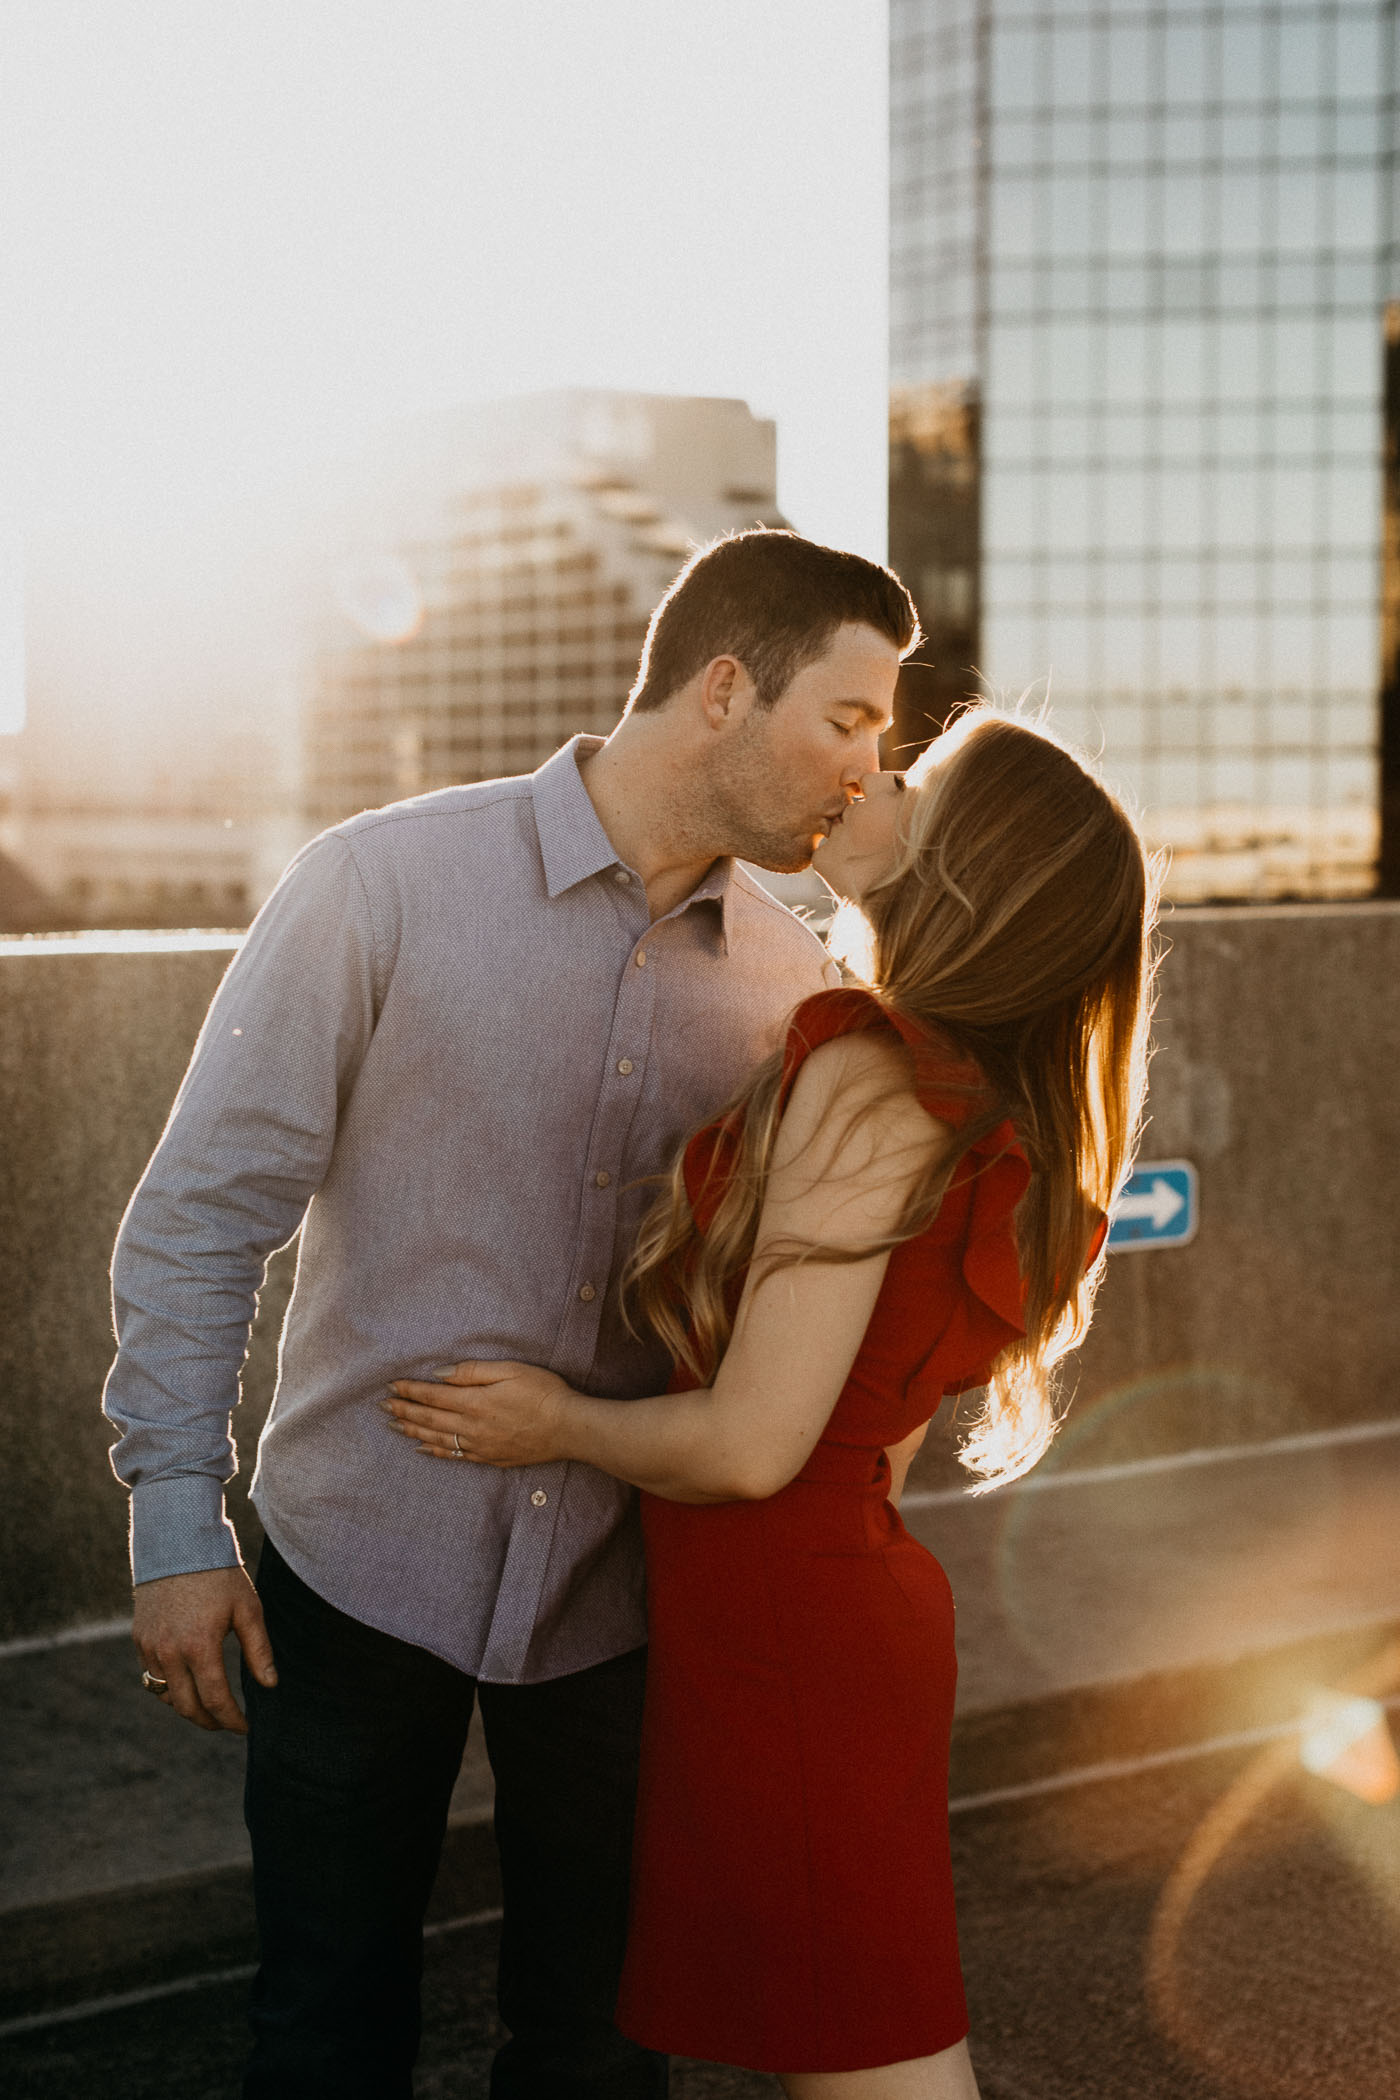 Engaged couple wearing red and blue taking photos on a rooftop at sunset